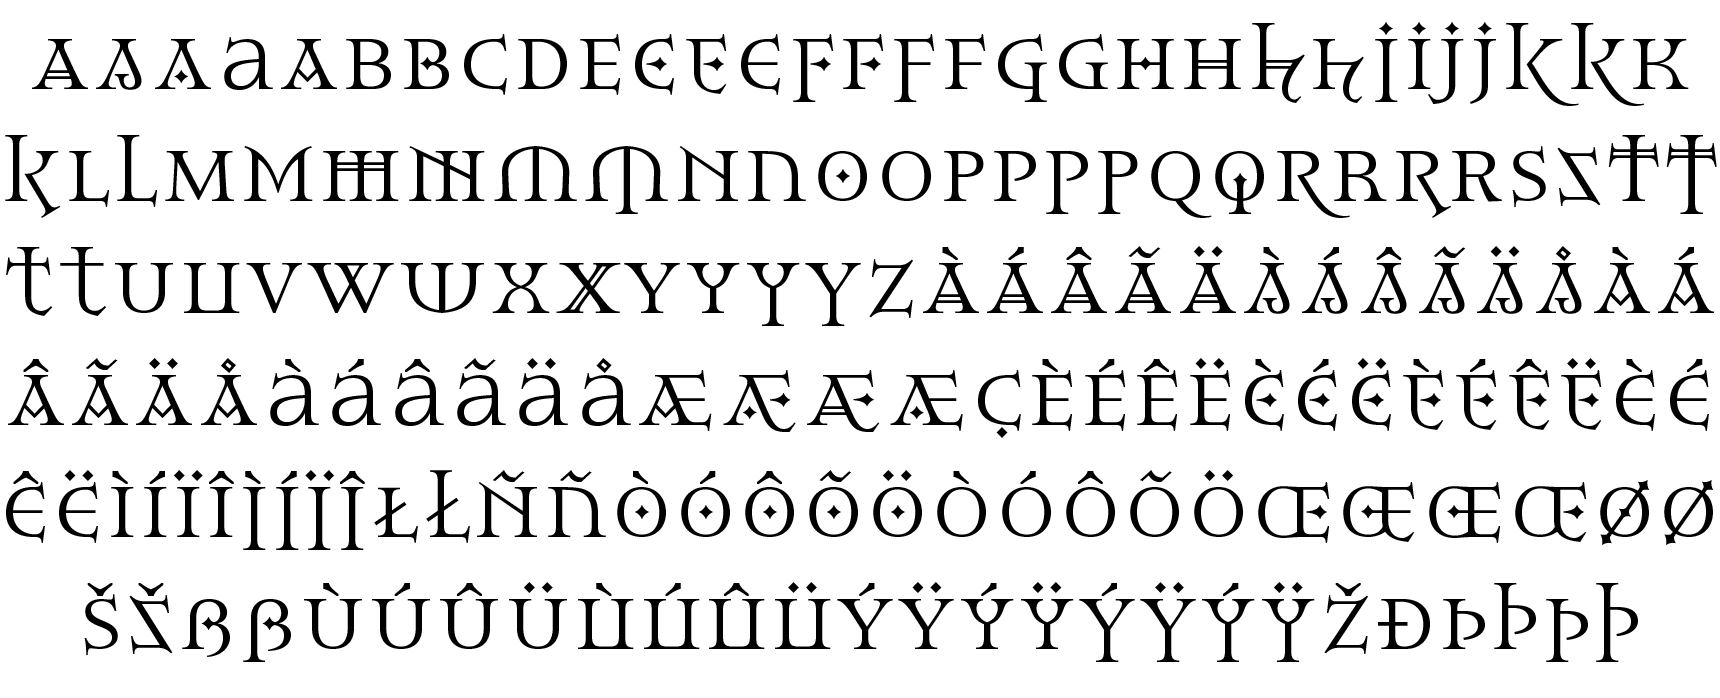 <p>Main forms</p> glyphs